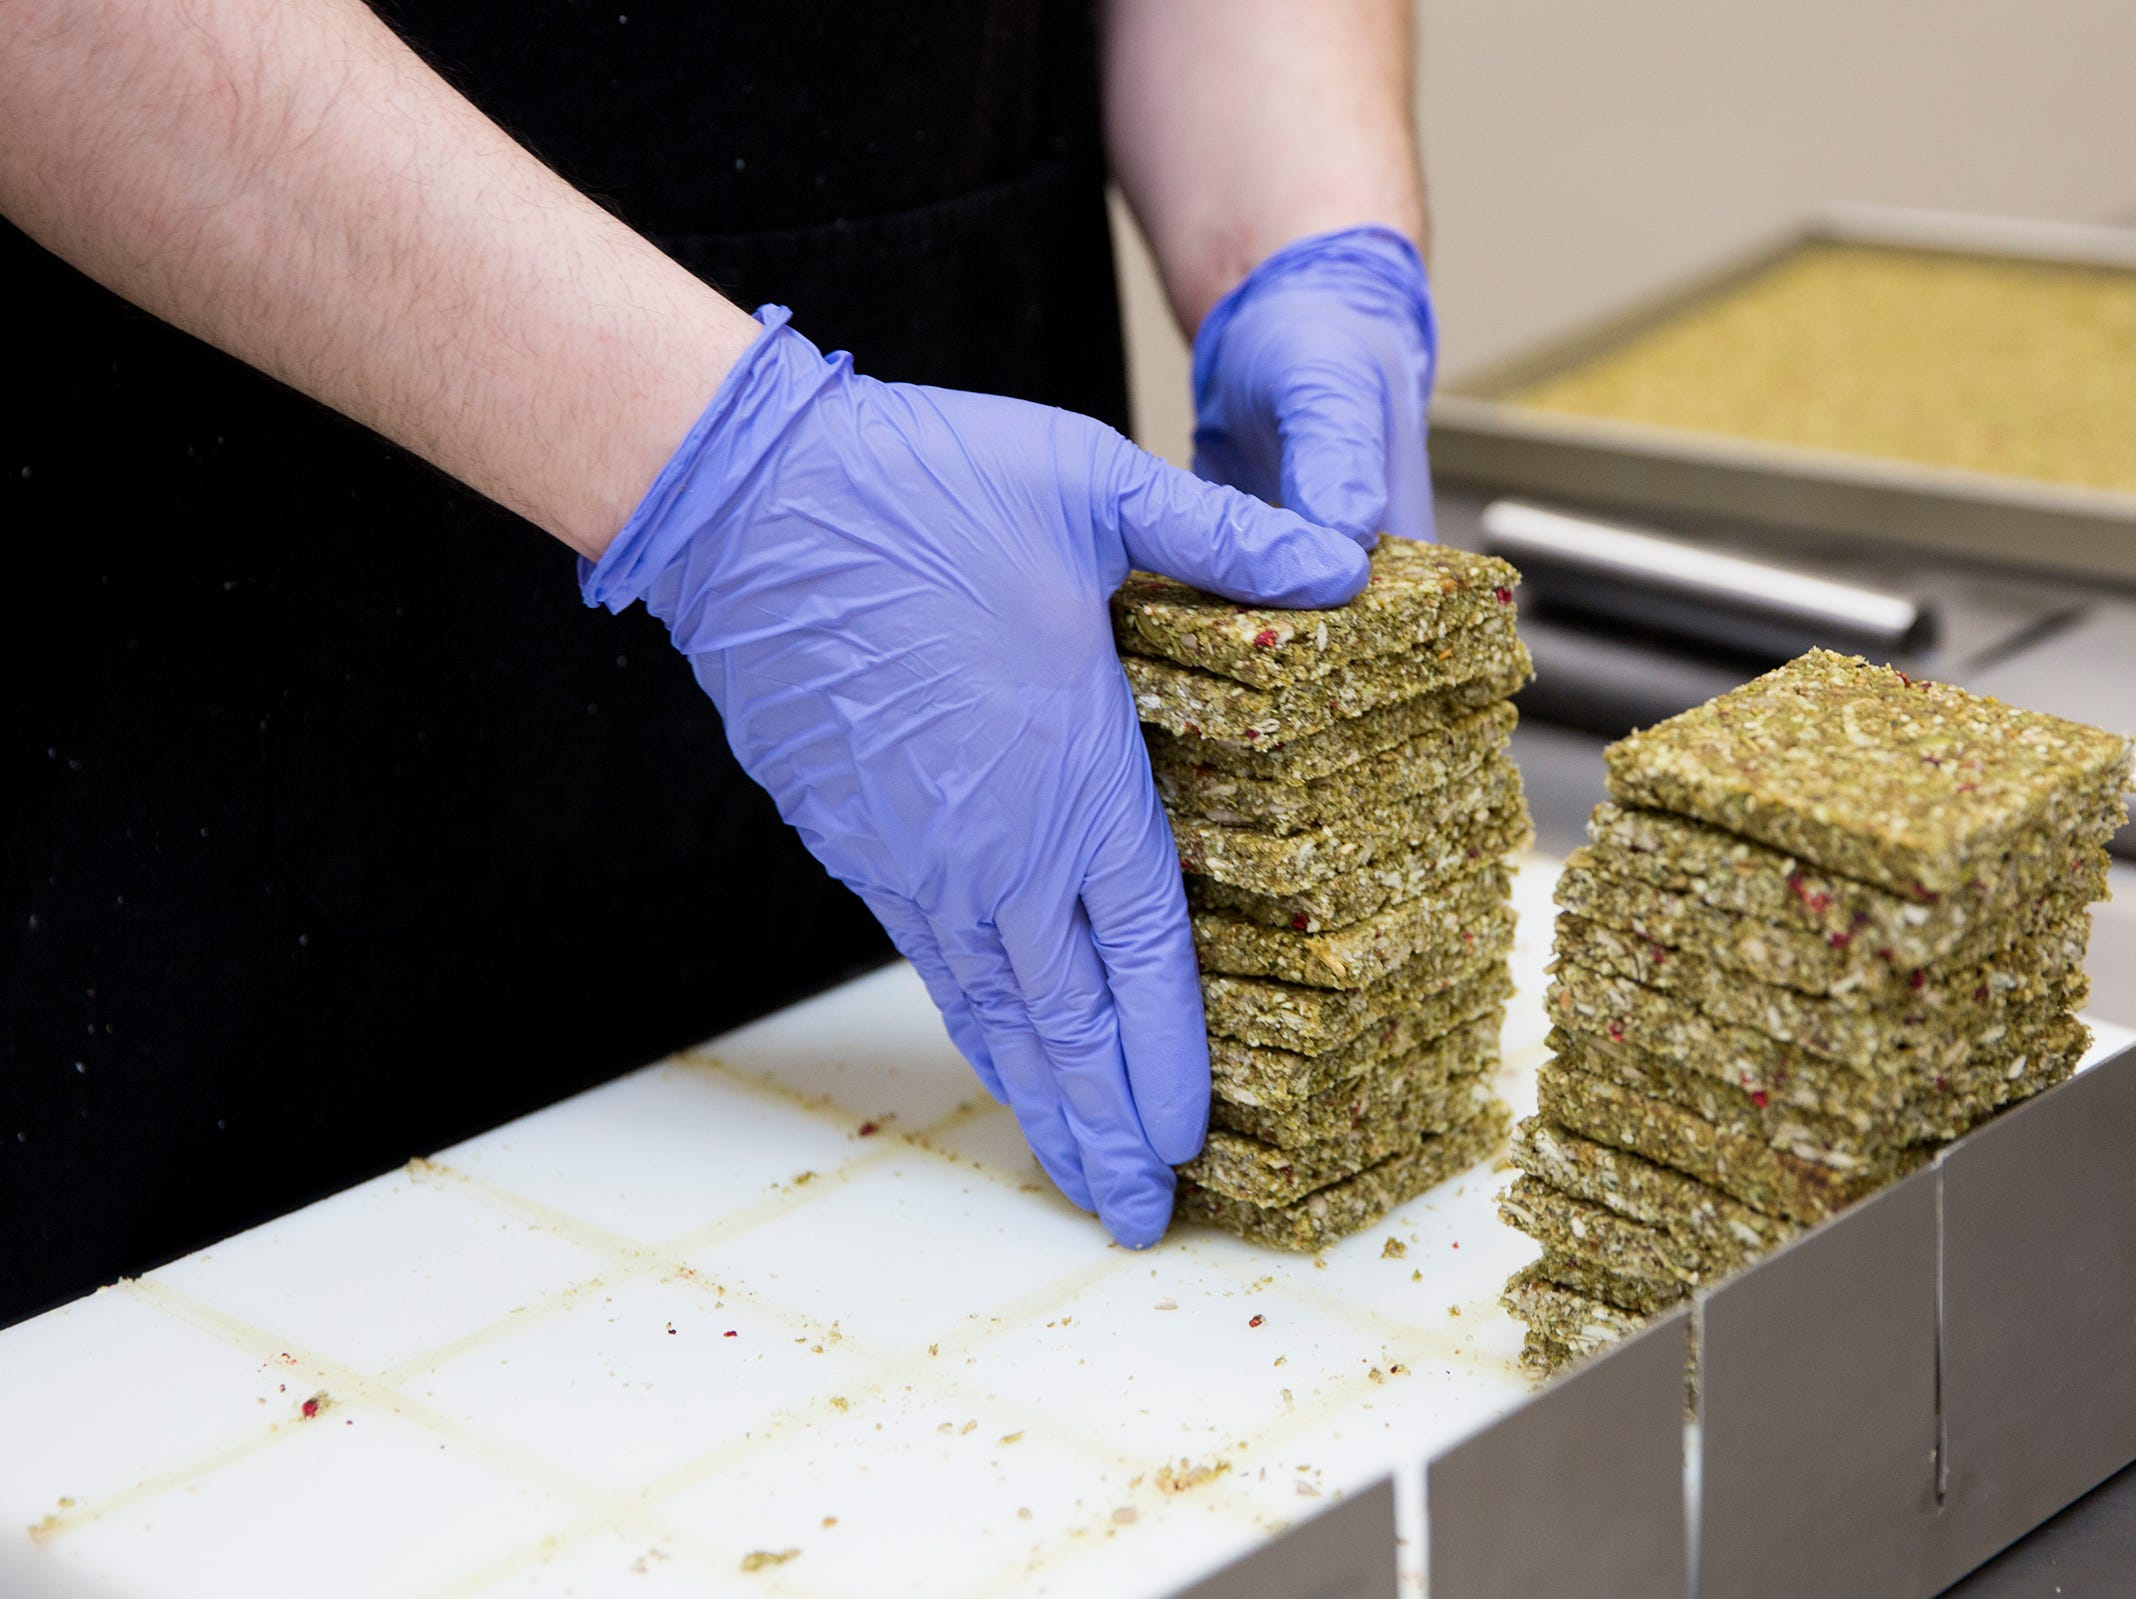 Kitchen manager Aldo Arevalo stacks squares of kale maca-flavored LivBar energy bars in their kitchen in downtown Salem on Wednesday, Feb. 20, 2019.